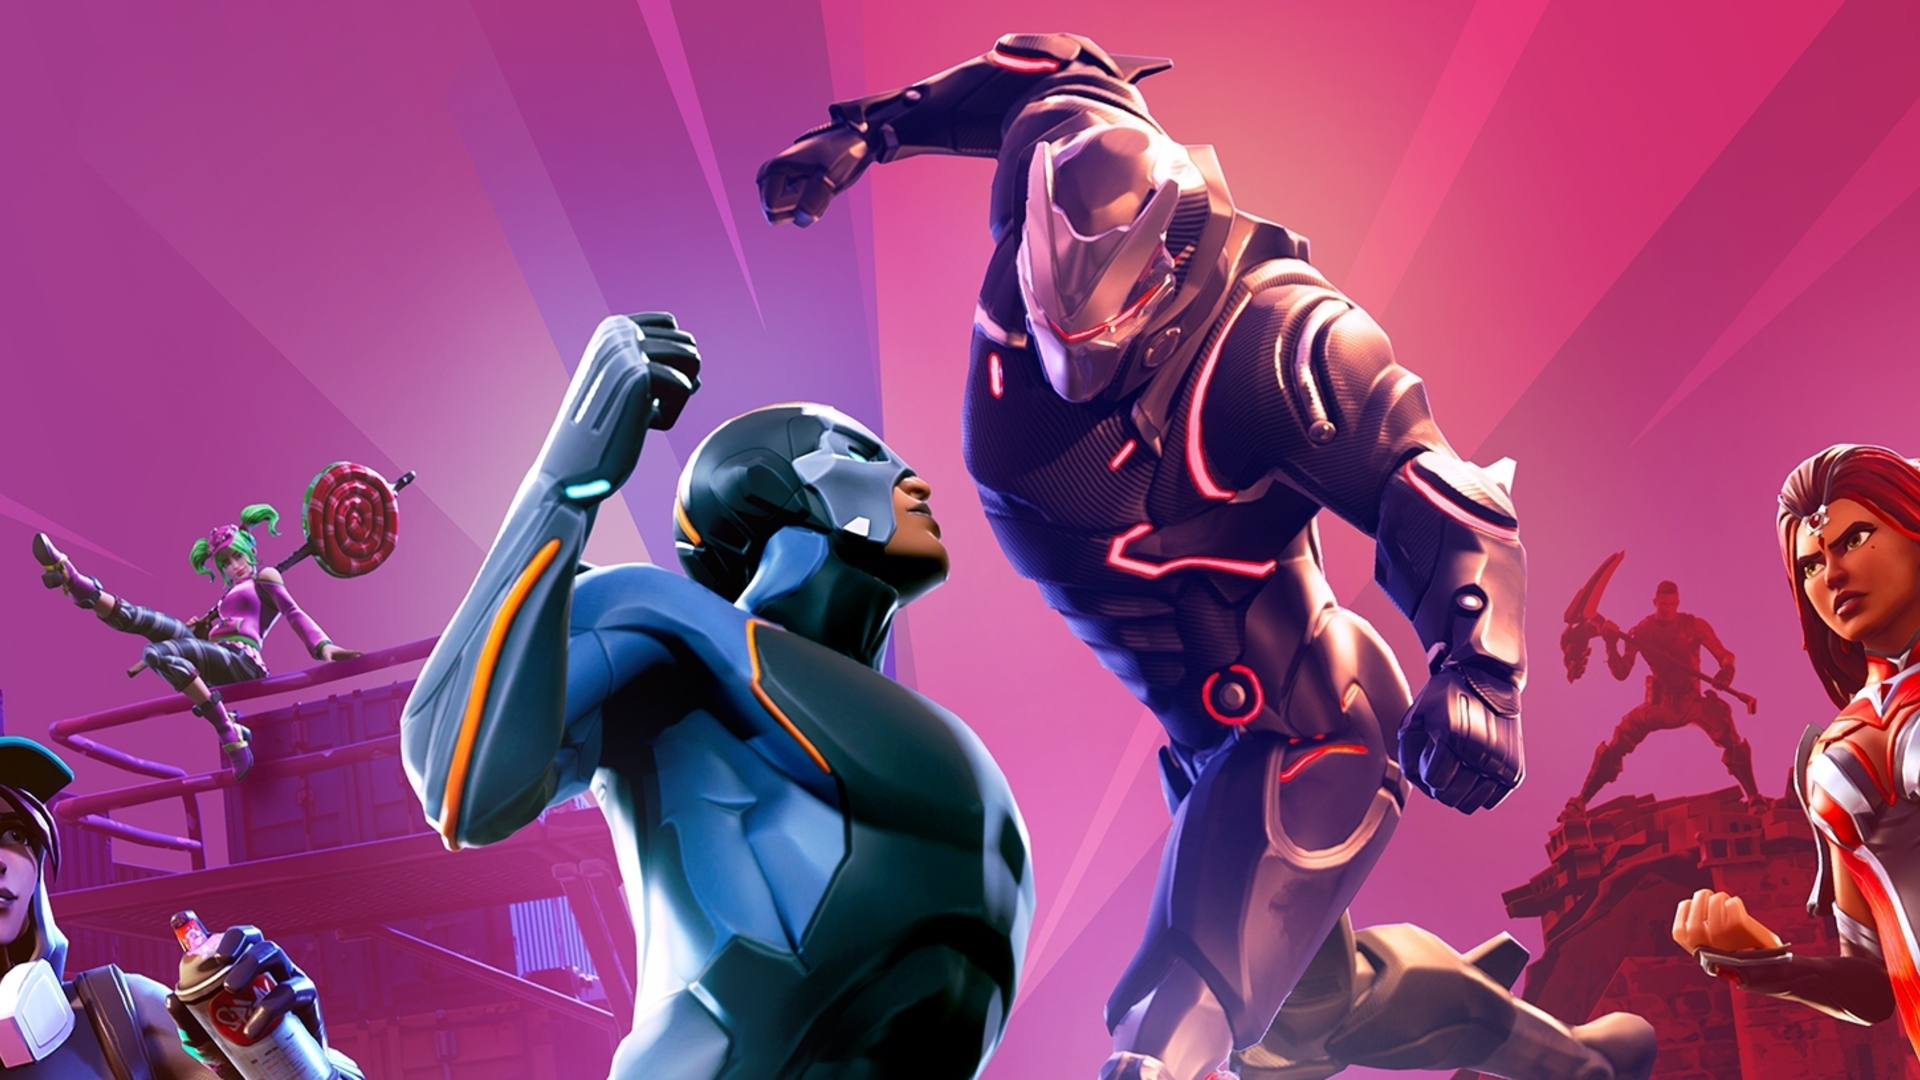 Netflix sees Fortnite as one of its greatest threats